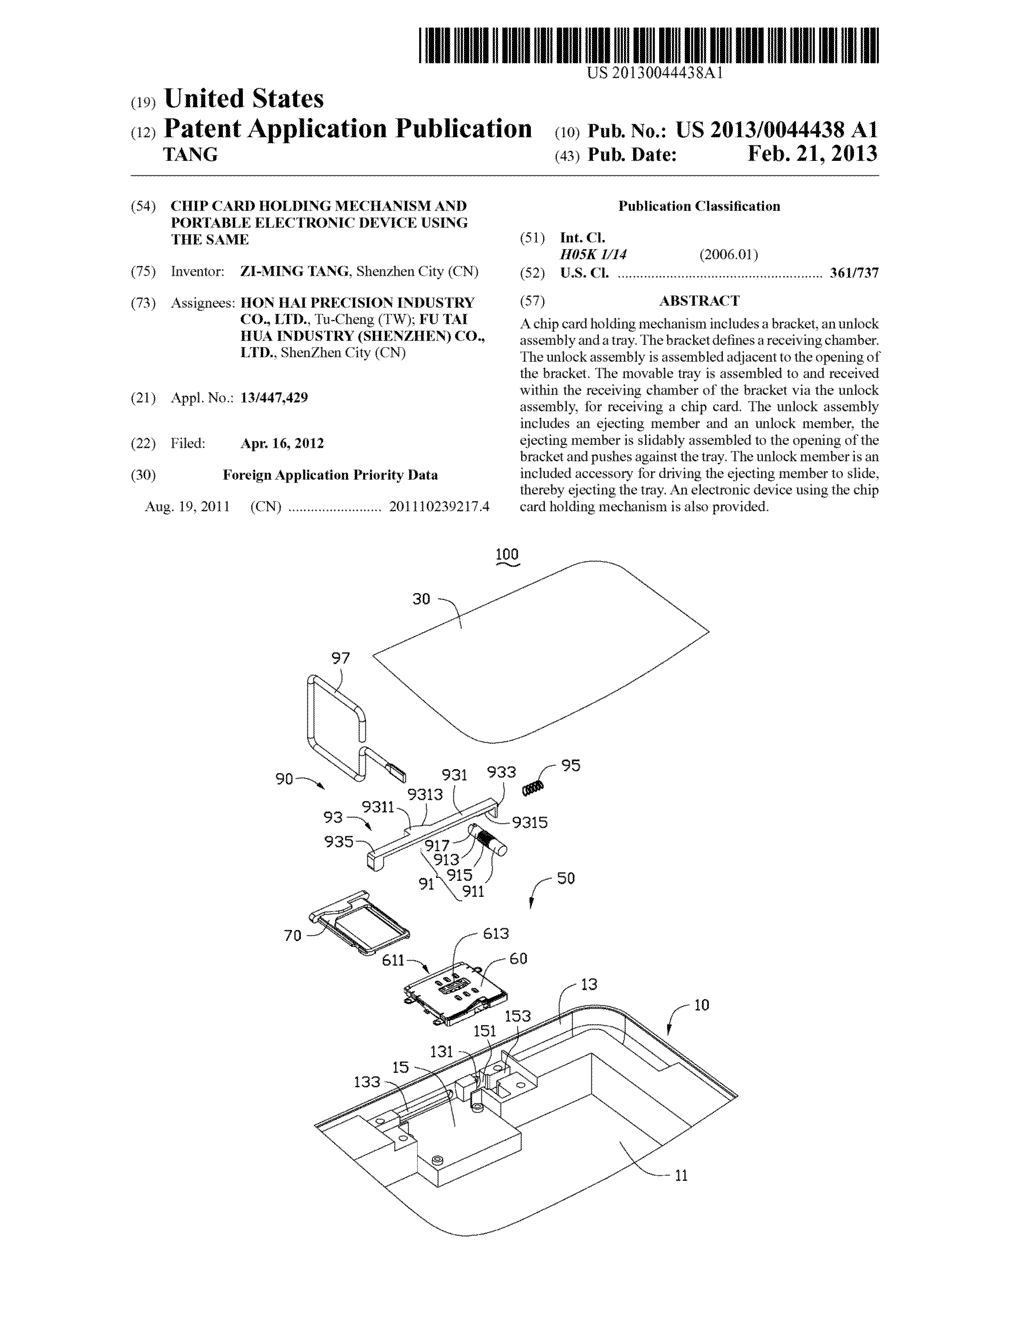 CHIP CARD HOLDING MECHANISM AND PORTABLE ELECTRONIC DEVICE USING THE SAME - diagram, schematic, and image 01